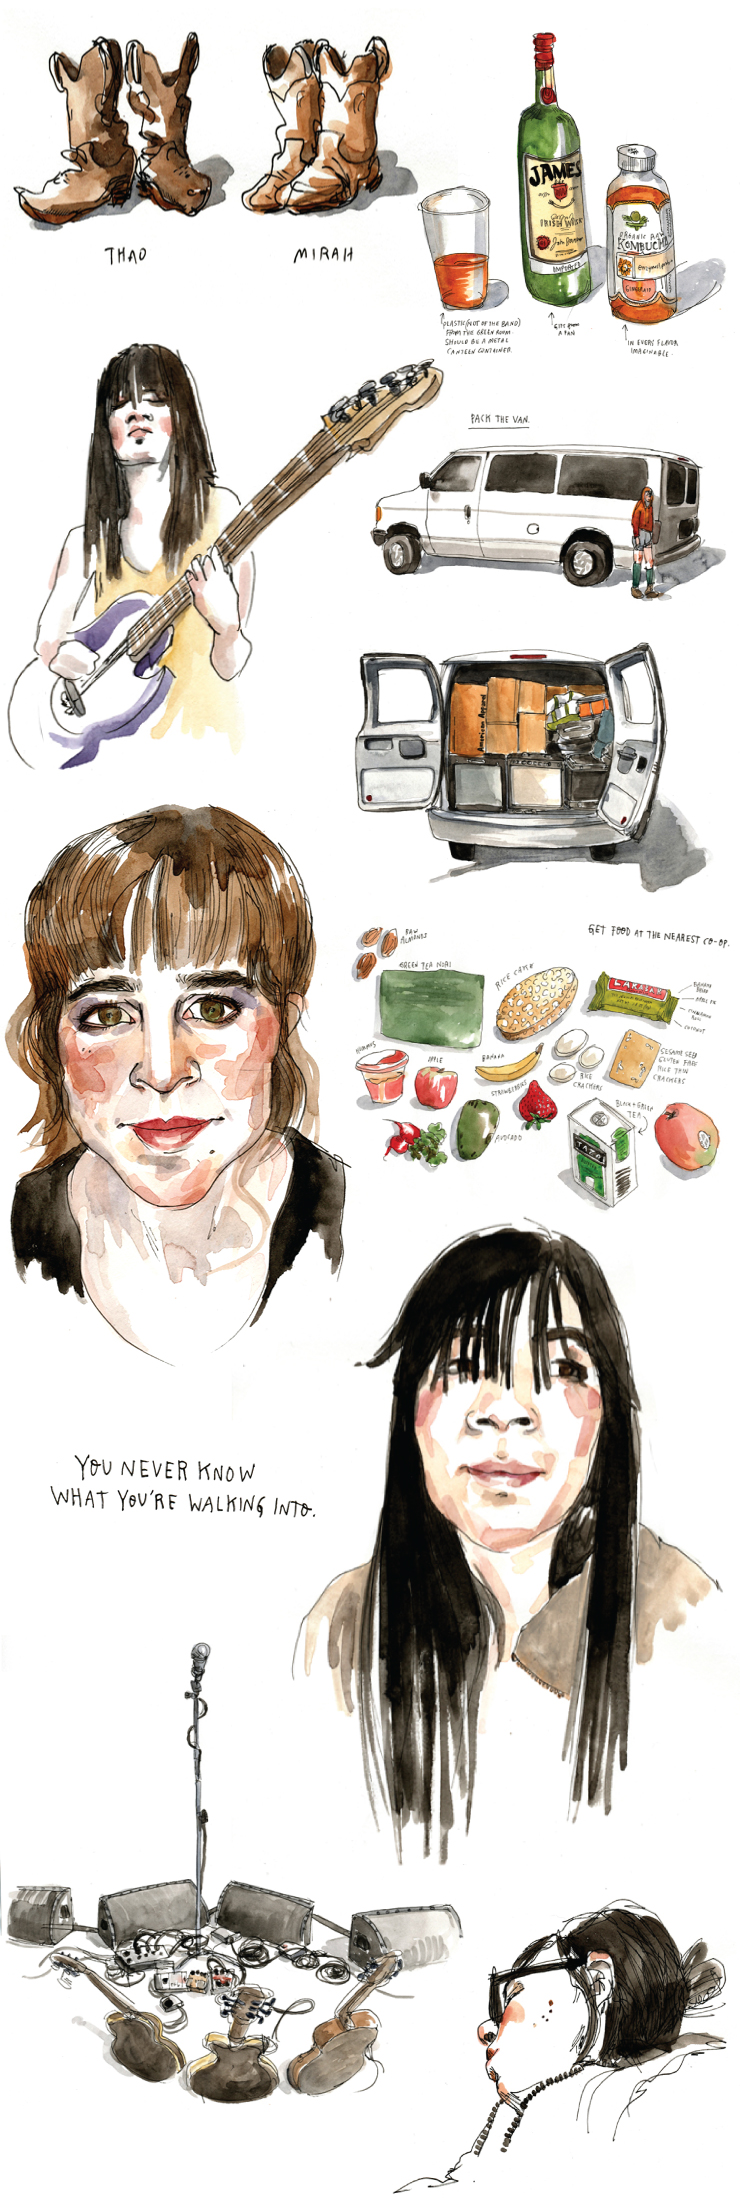 Thao + Mirah on tour by Wendy Macnaughton